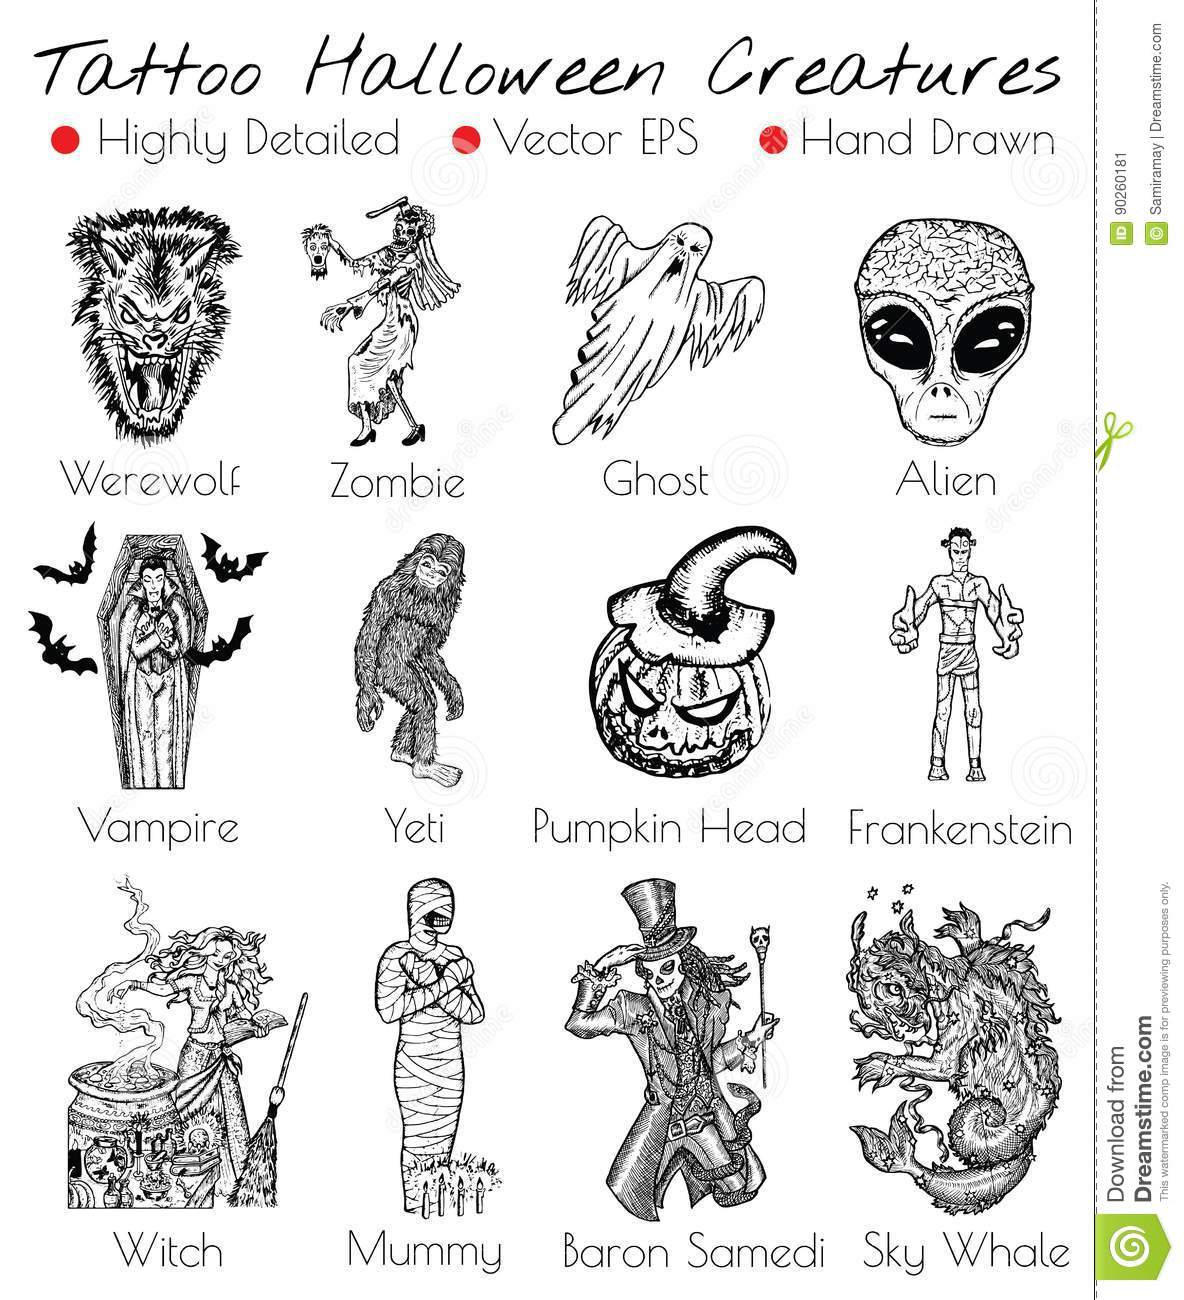 b720478a3 Tattoo Set With Hand Drawn Halloween Creatures Stock Vector ...